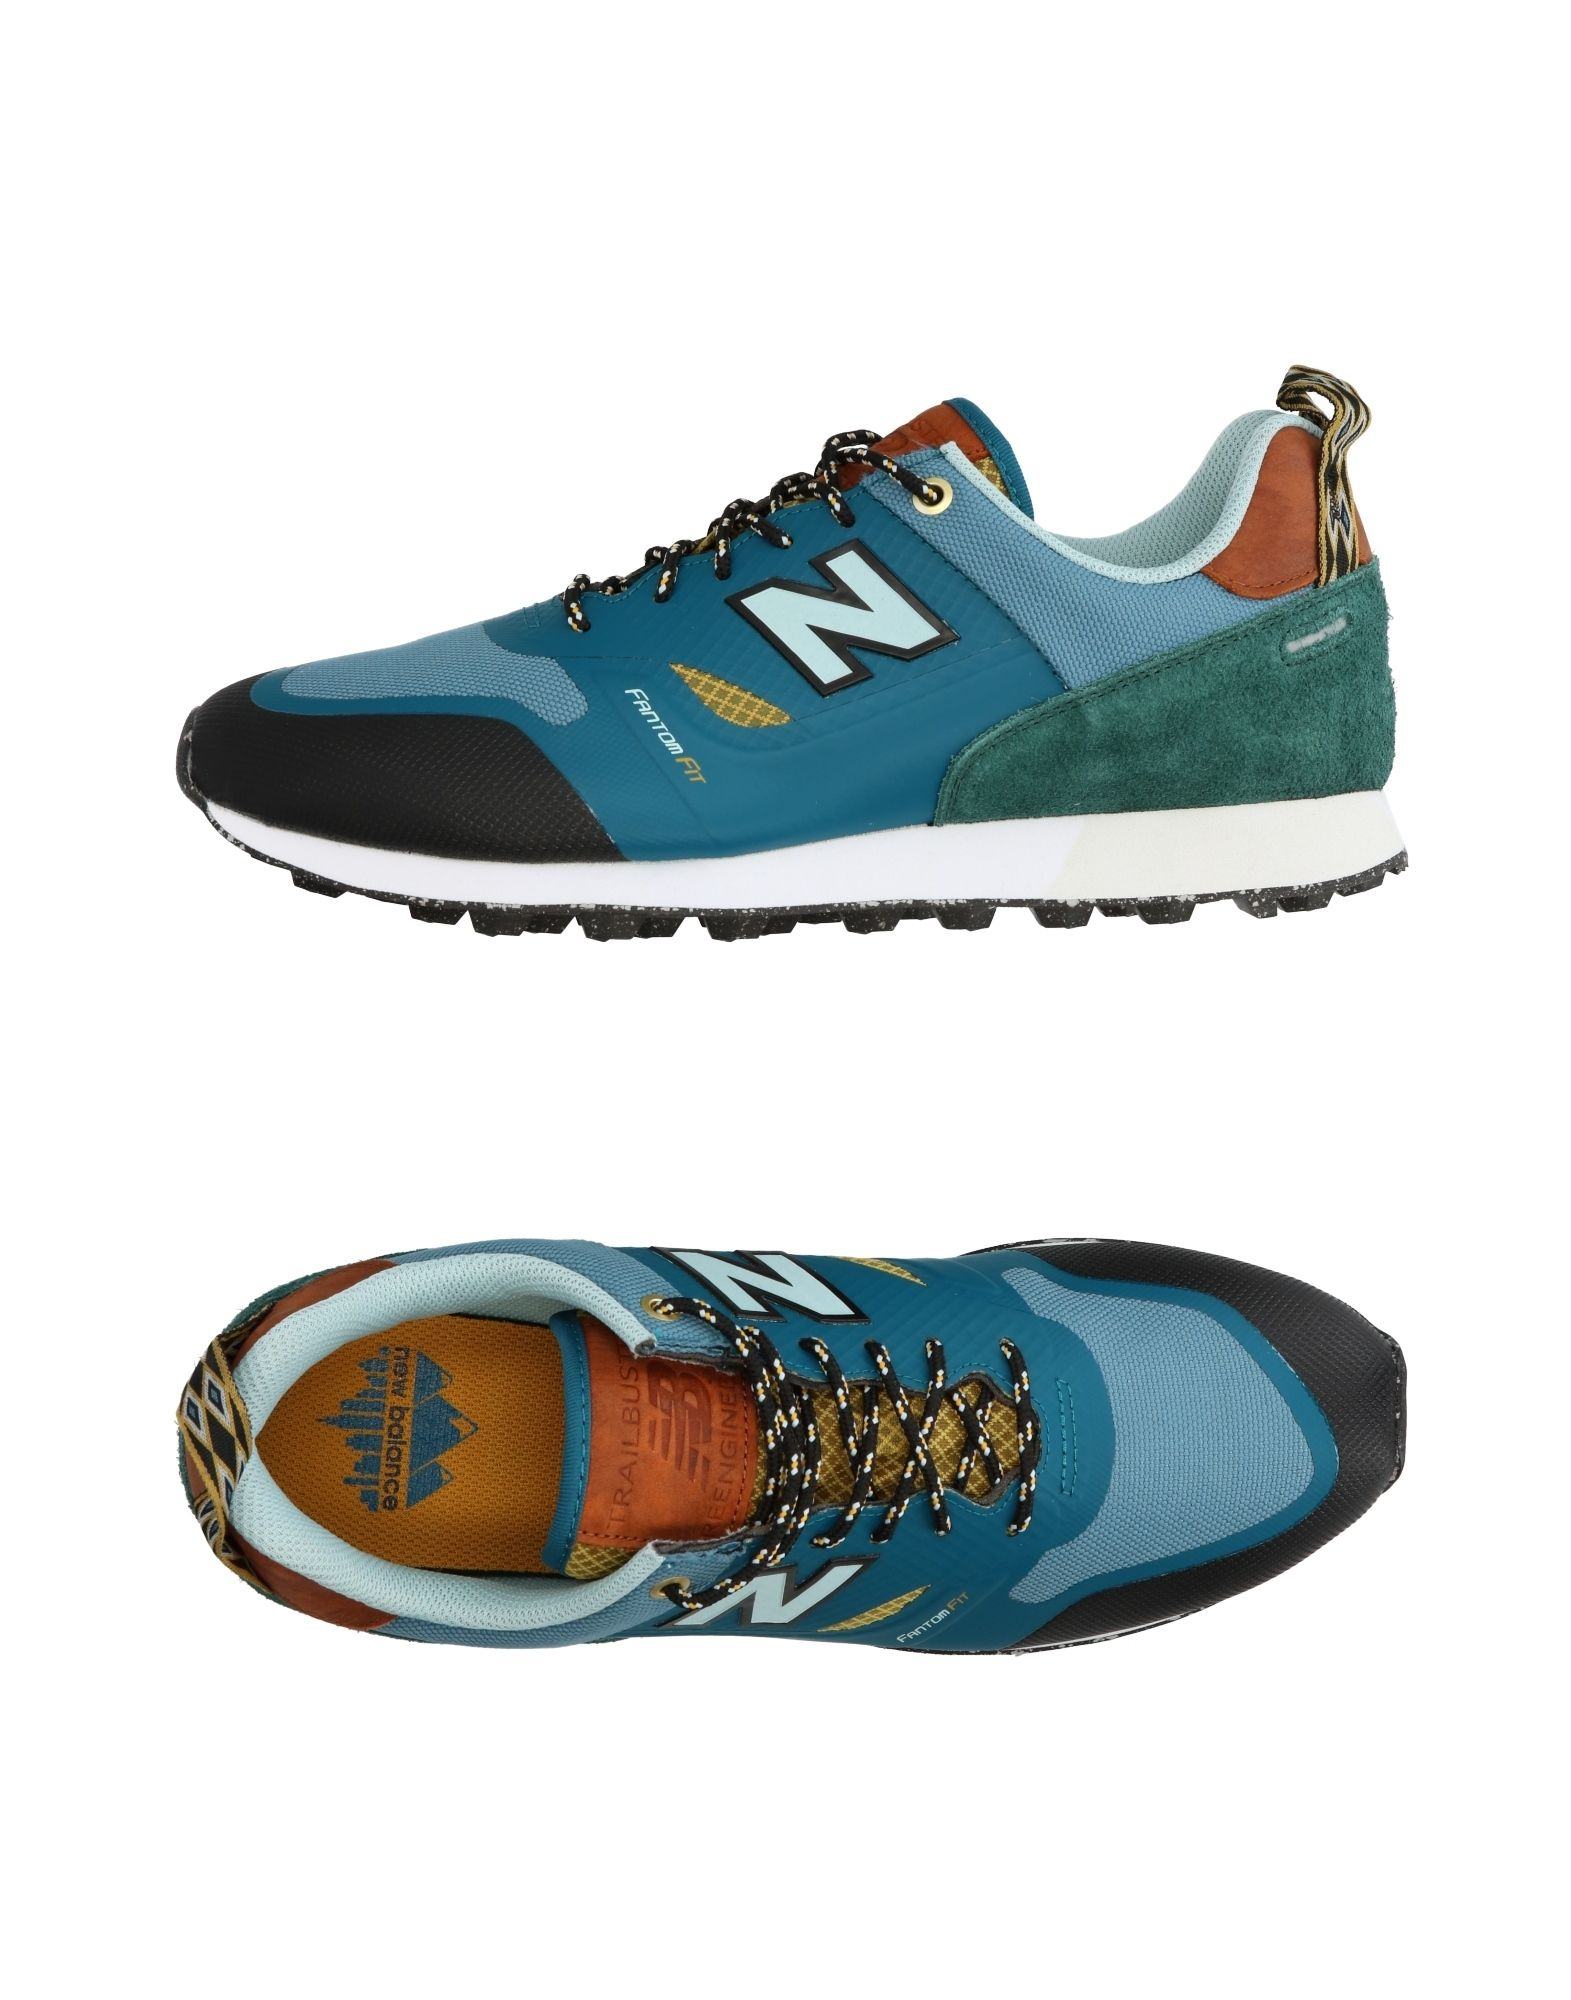 New Balance Sneakers Sneakers Sneakers - Men New Balance Sneakers online on  Canada - 11217148AH d0b6e2